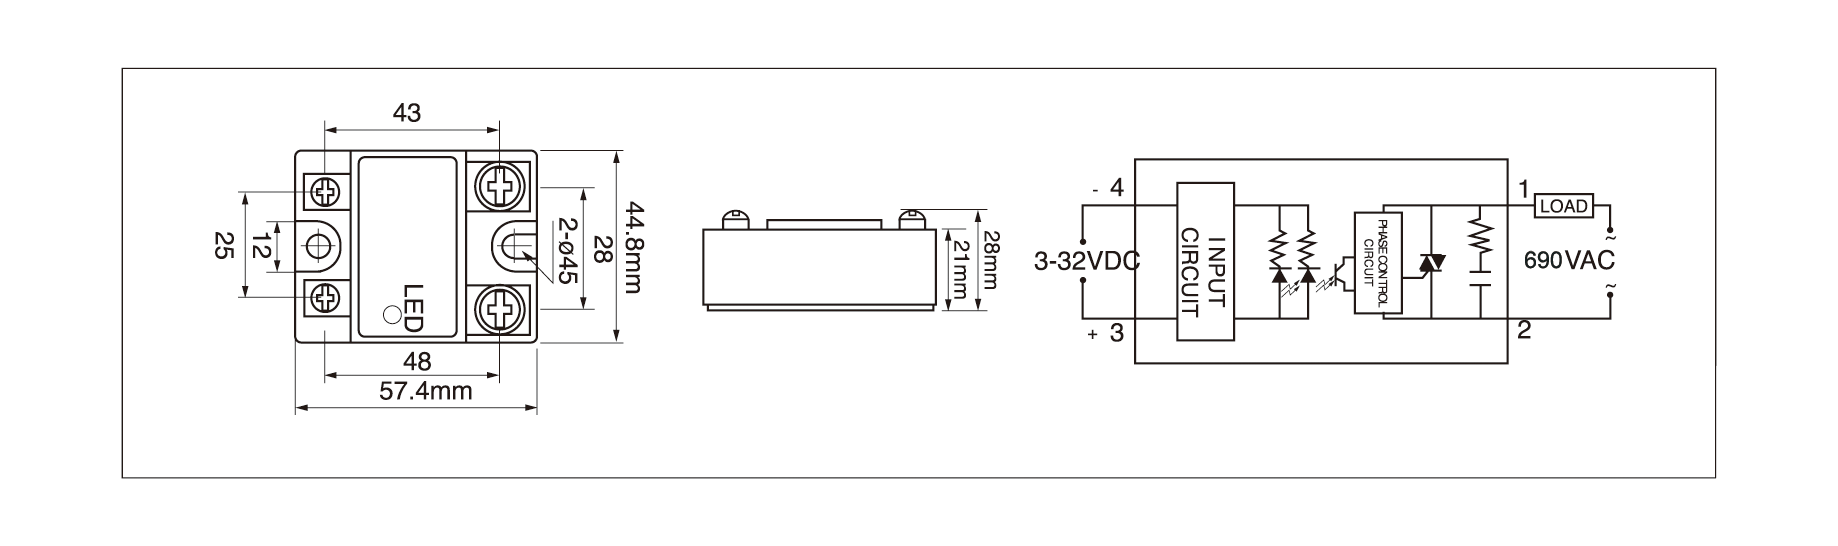 Dimensions,_circuit_wiring_diagram,_DC_to_AC_solid_state_relay_schematic_of_mager_MGR_1D6940_DC_to_AC_solid_state_relay│HUIMULTD